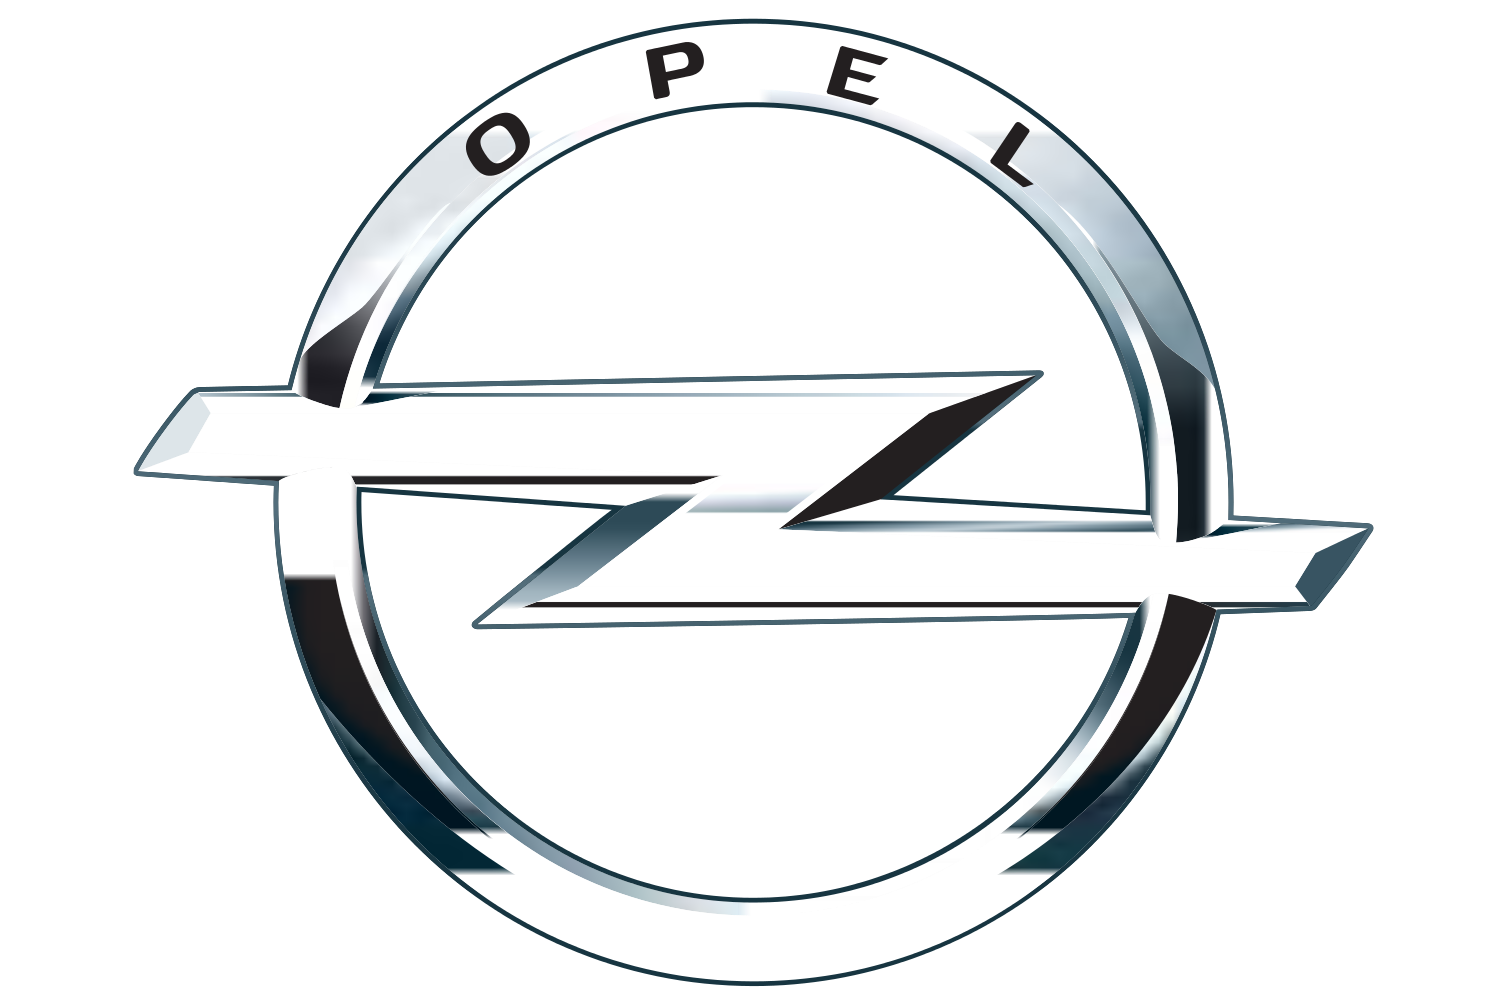 Opel logo opel car symbol and history car brand names opel logo biocorpaavc Choice Image